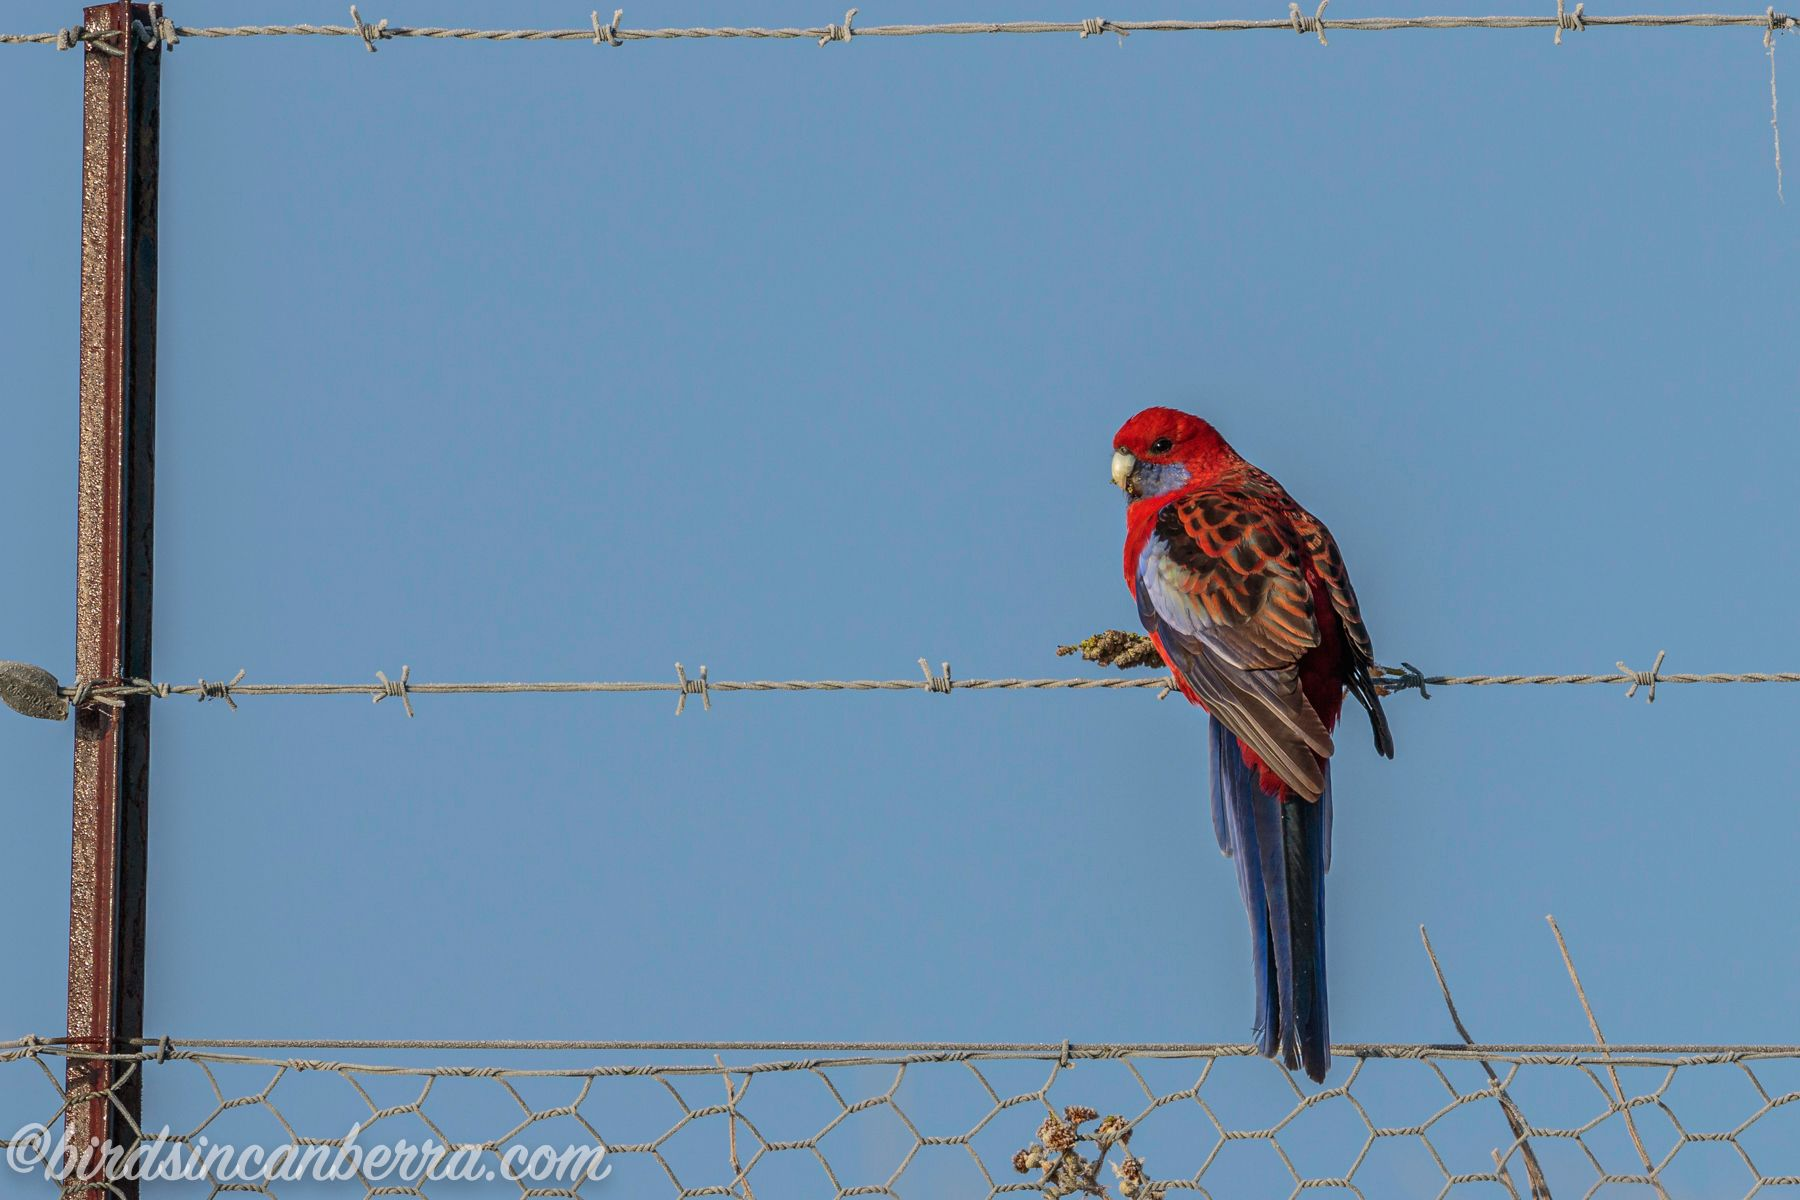 Crimson Rosella eating a flower head on a fence at